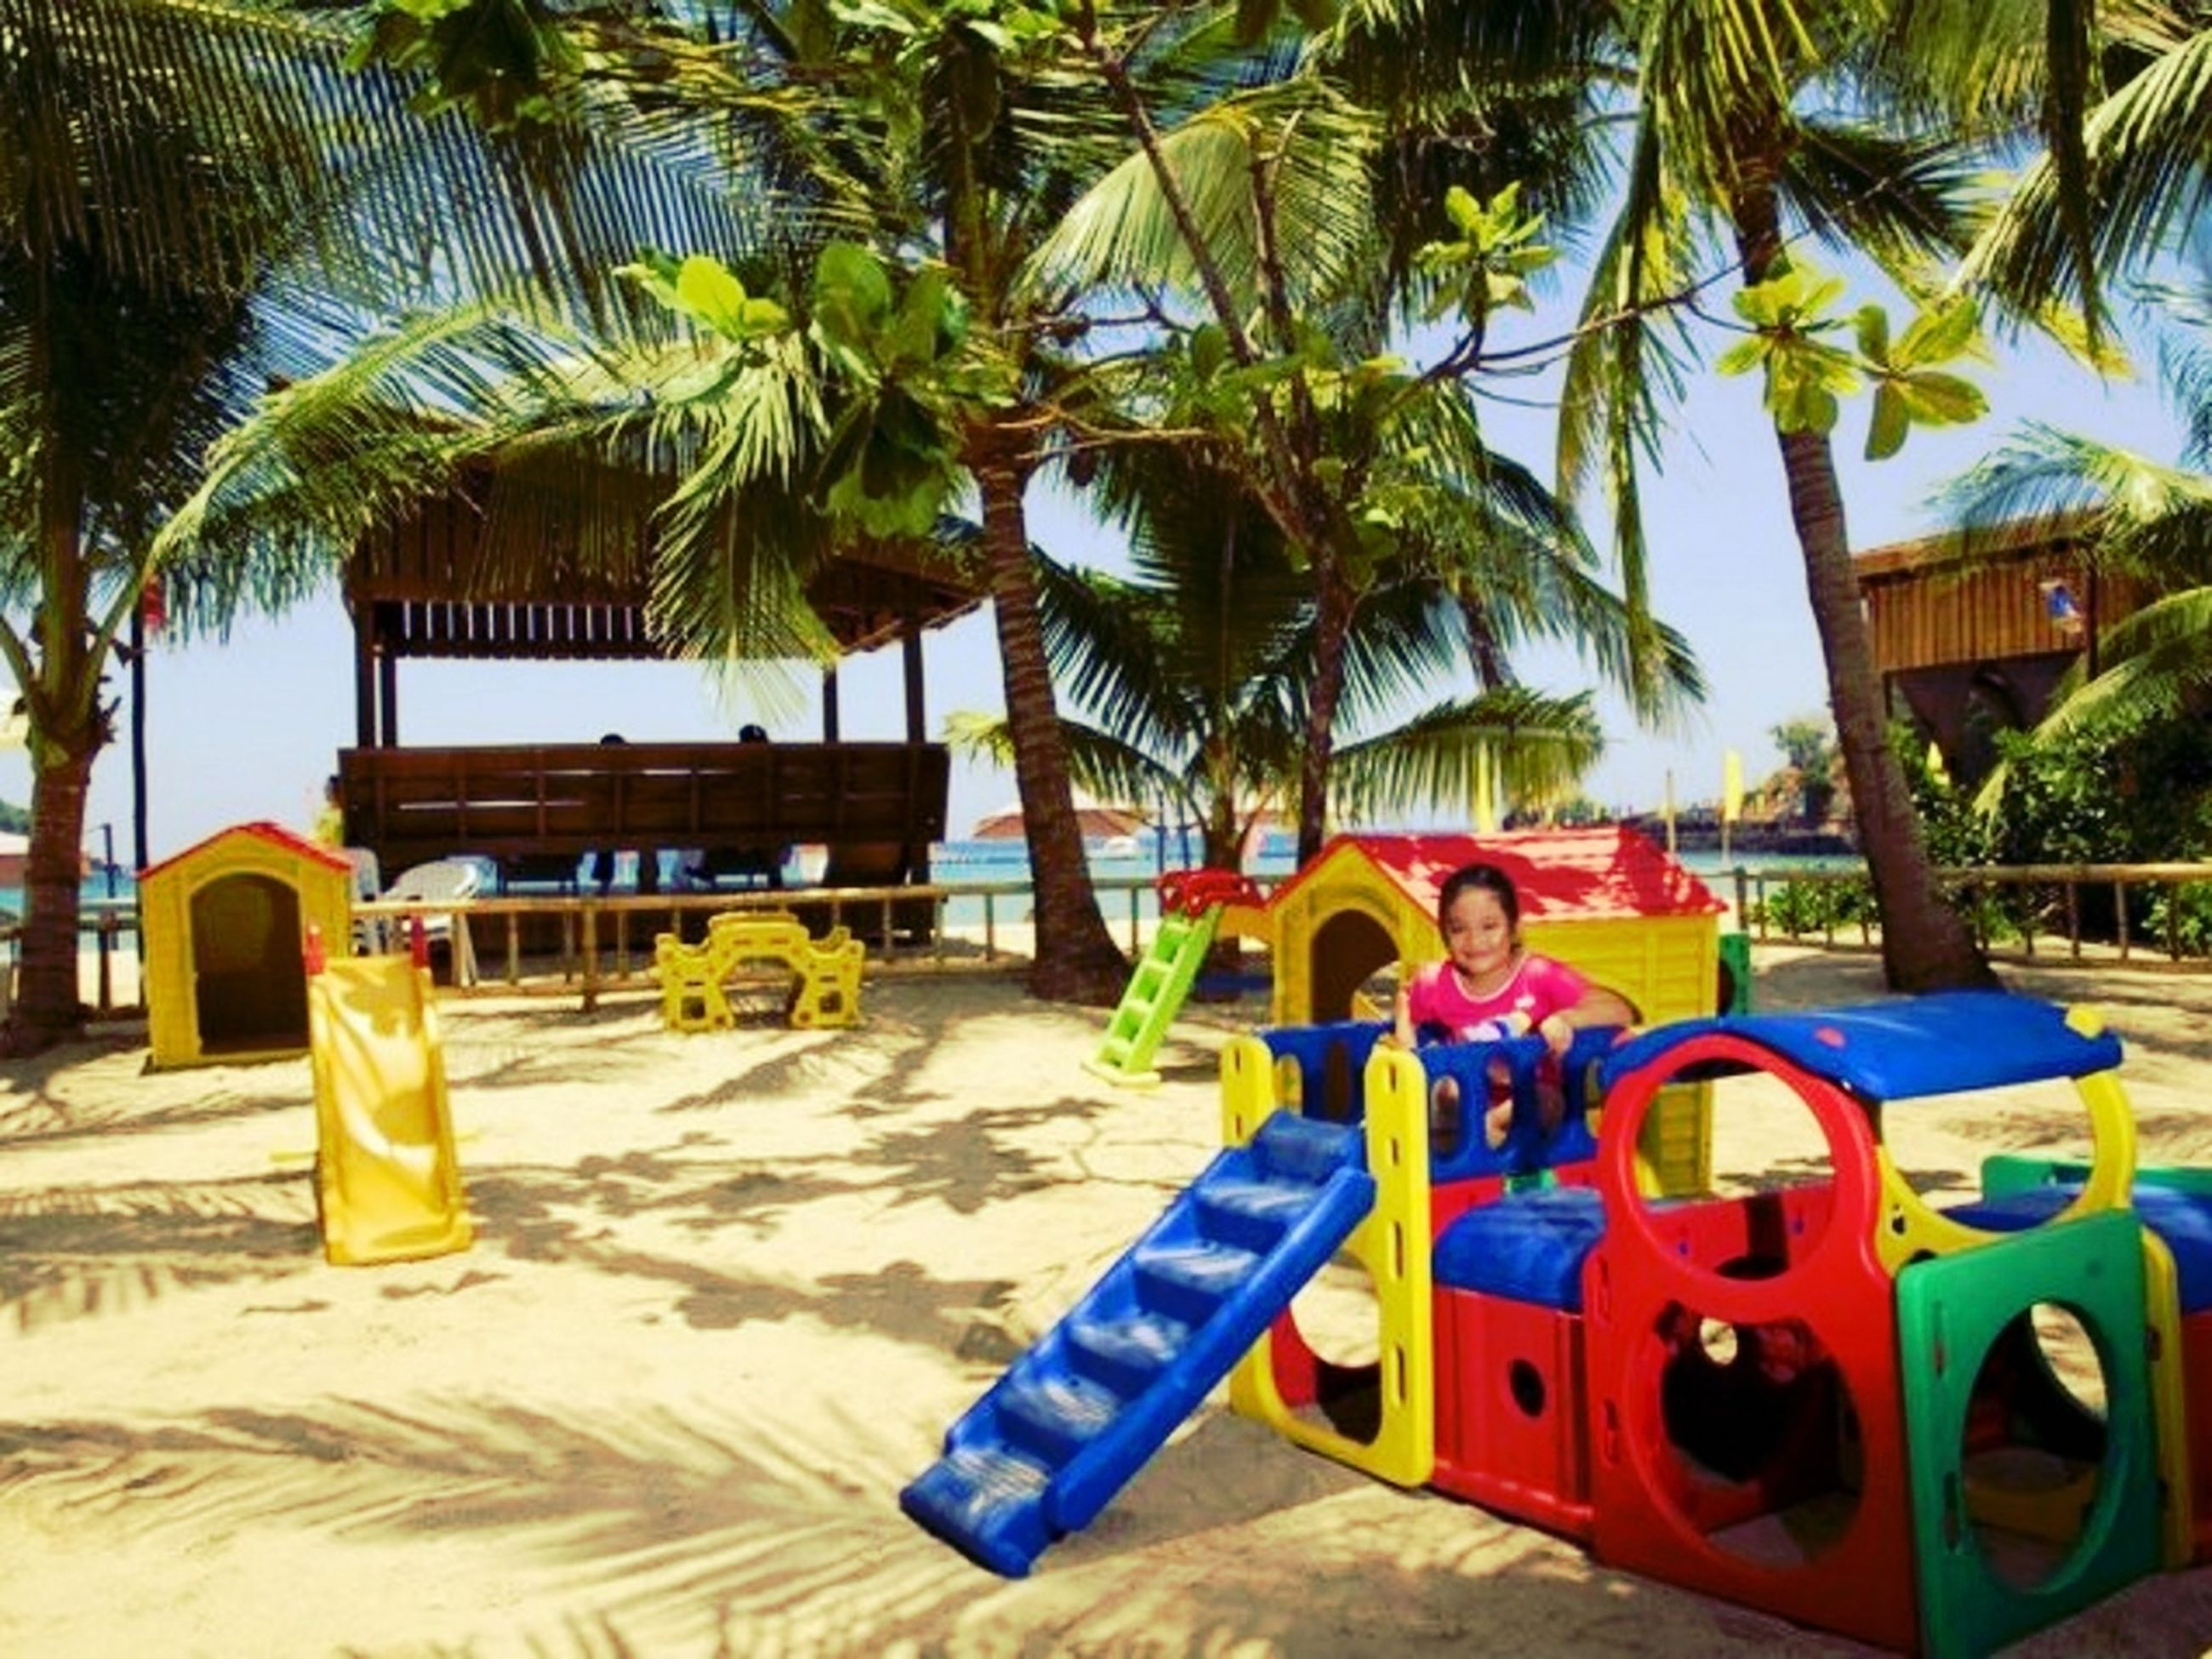 tree, palm tree, built structure, architecture, yellow, absence, day, chair, building exterior, blue, multi colored, beach, sunlight, sand, outdoors, childhood, no people, table, playground, empty